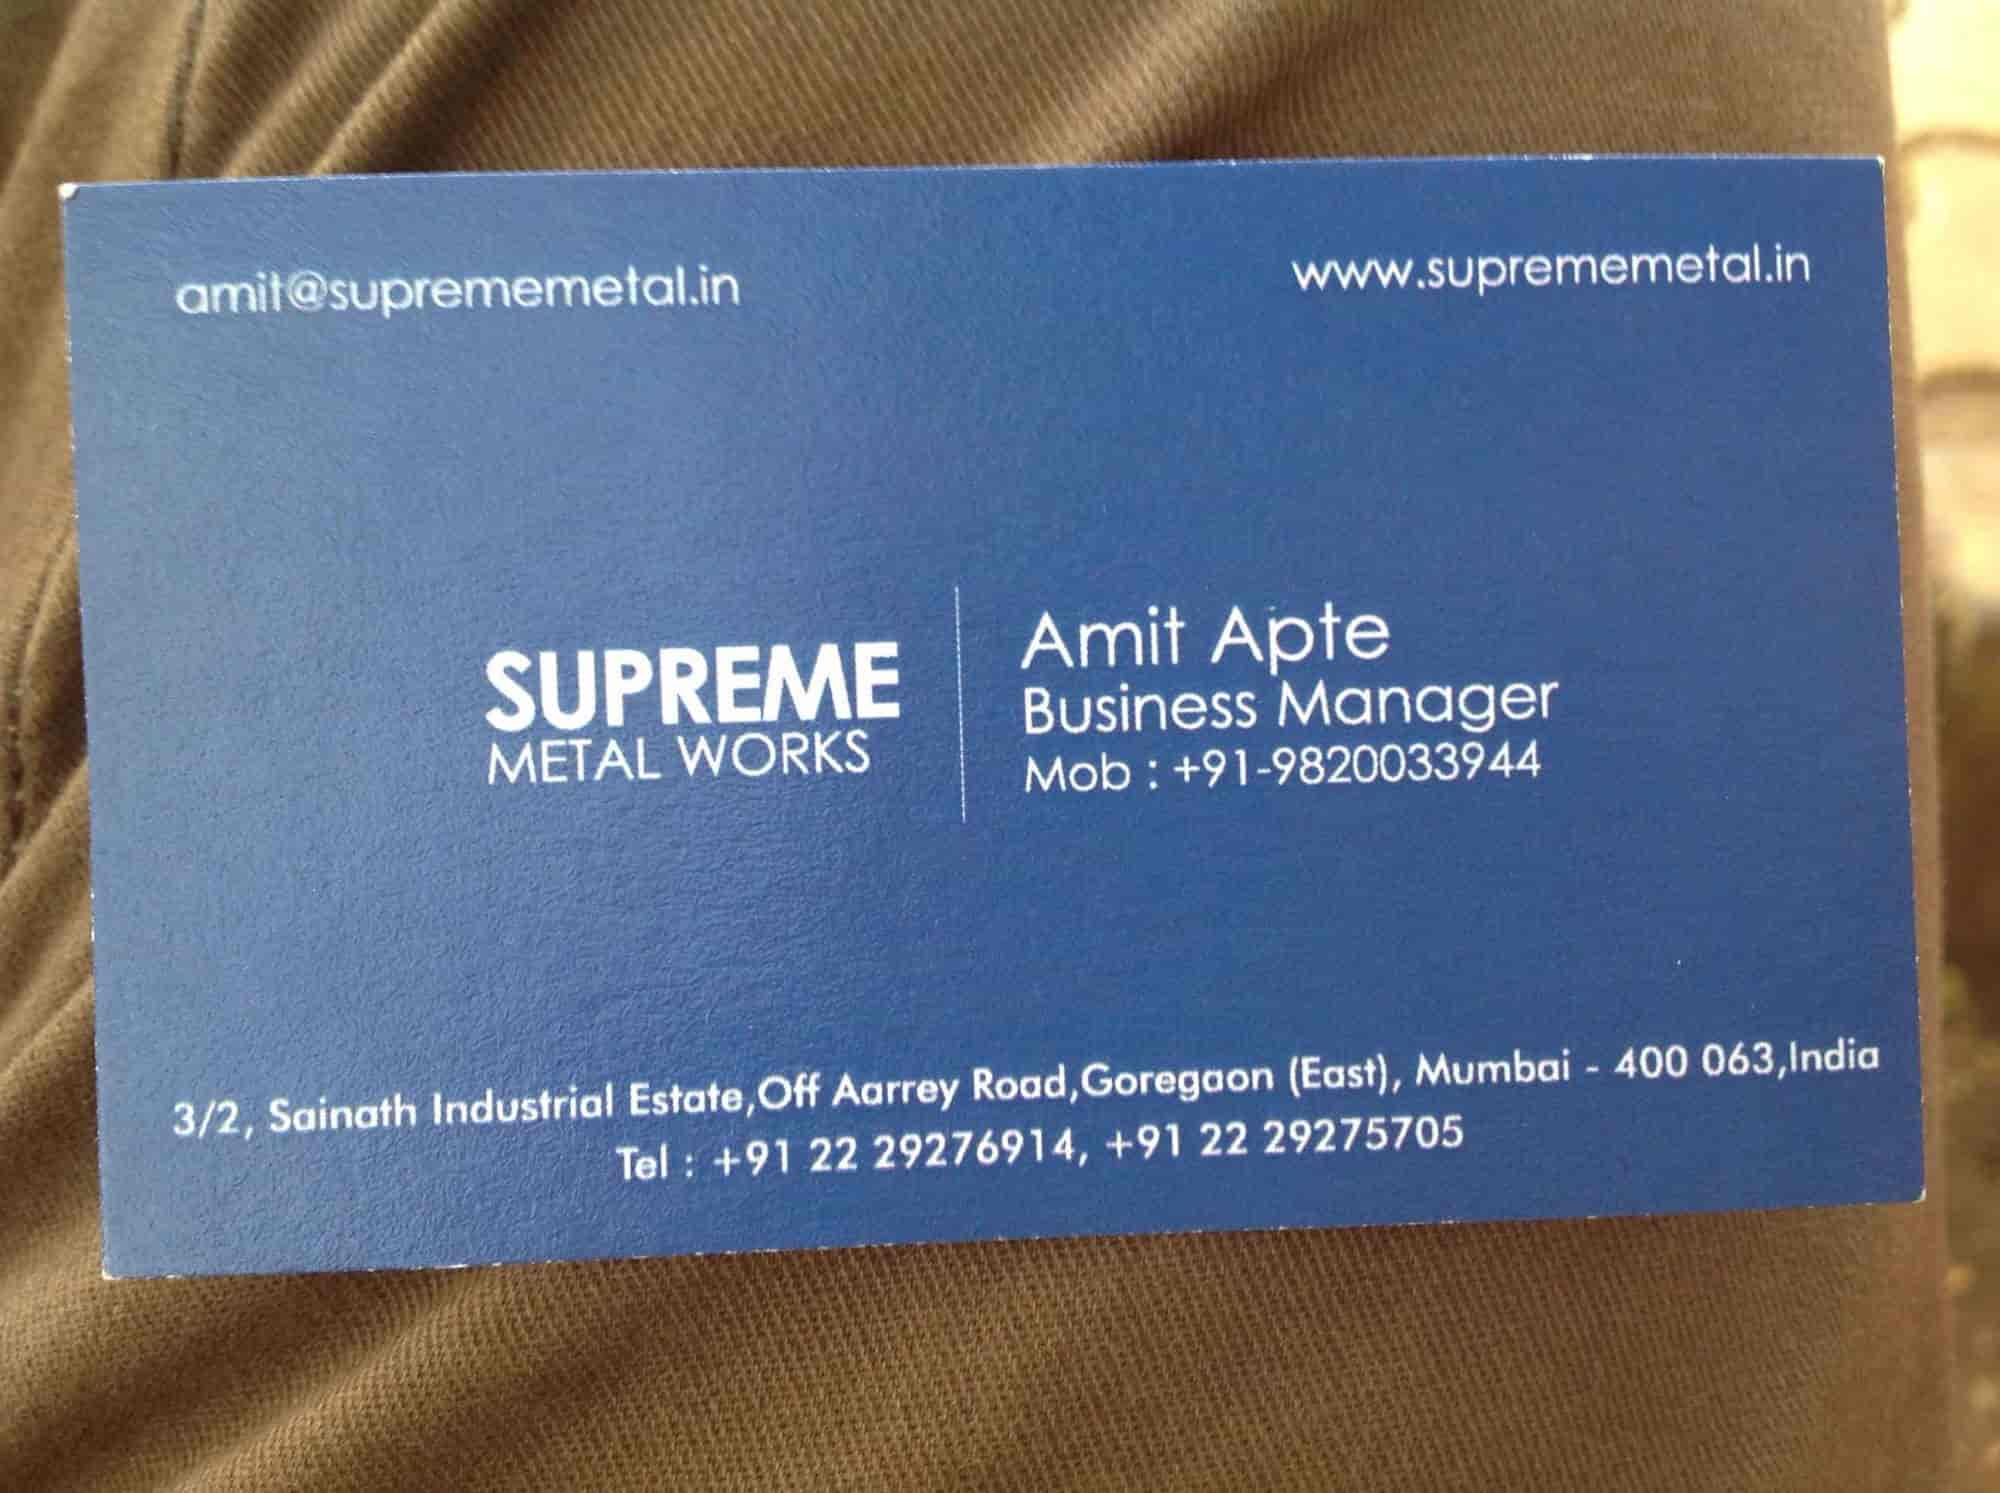 Supreme metal works photos goregaon east mumbai pictures images visiting card supreme metal works photos goregaon east mumbai cnc machine part reheart Images